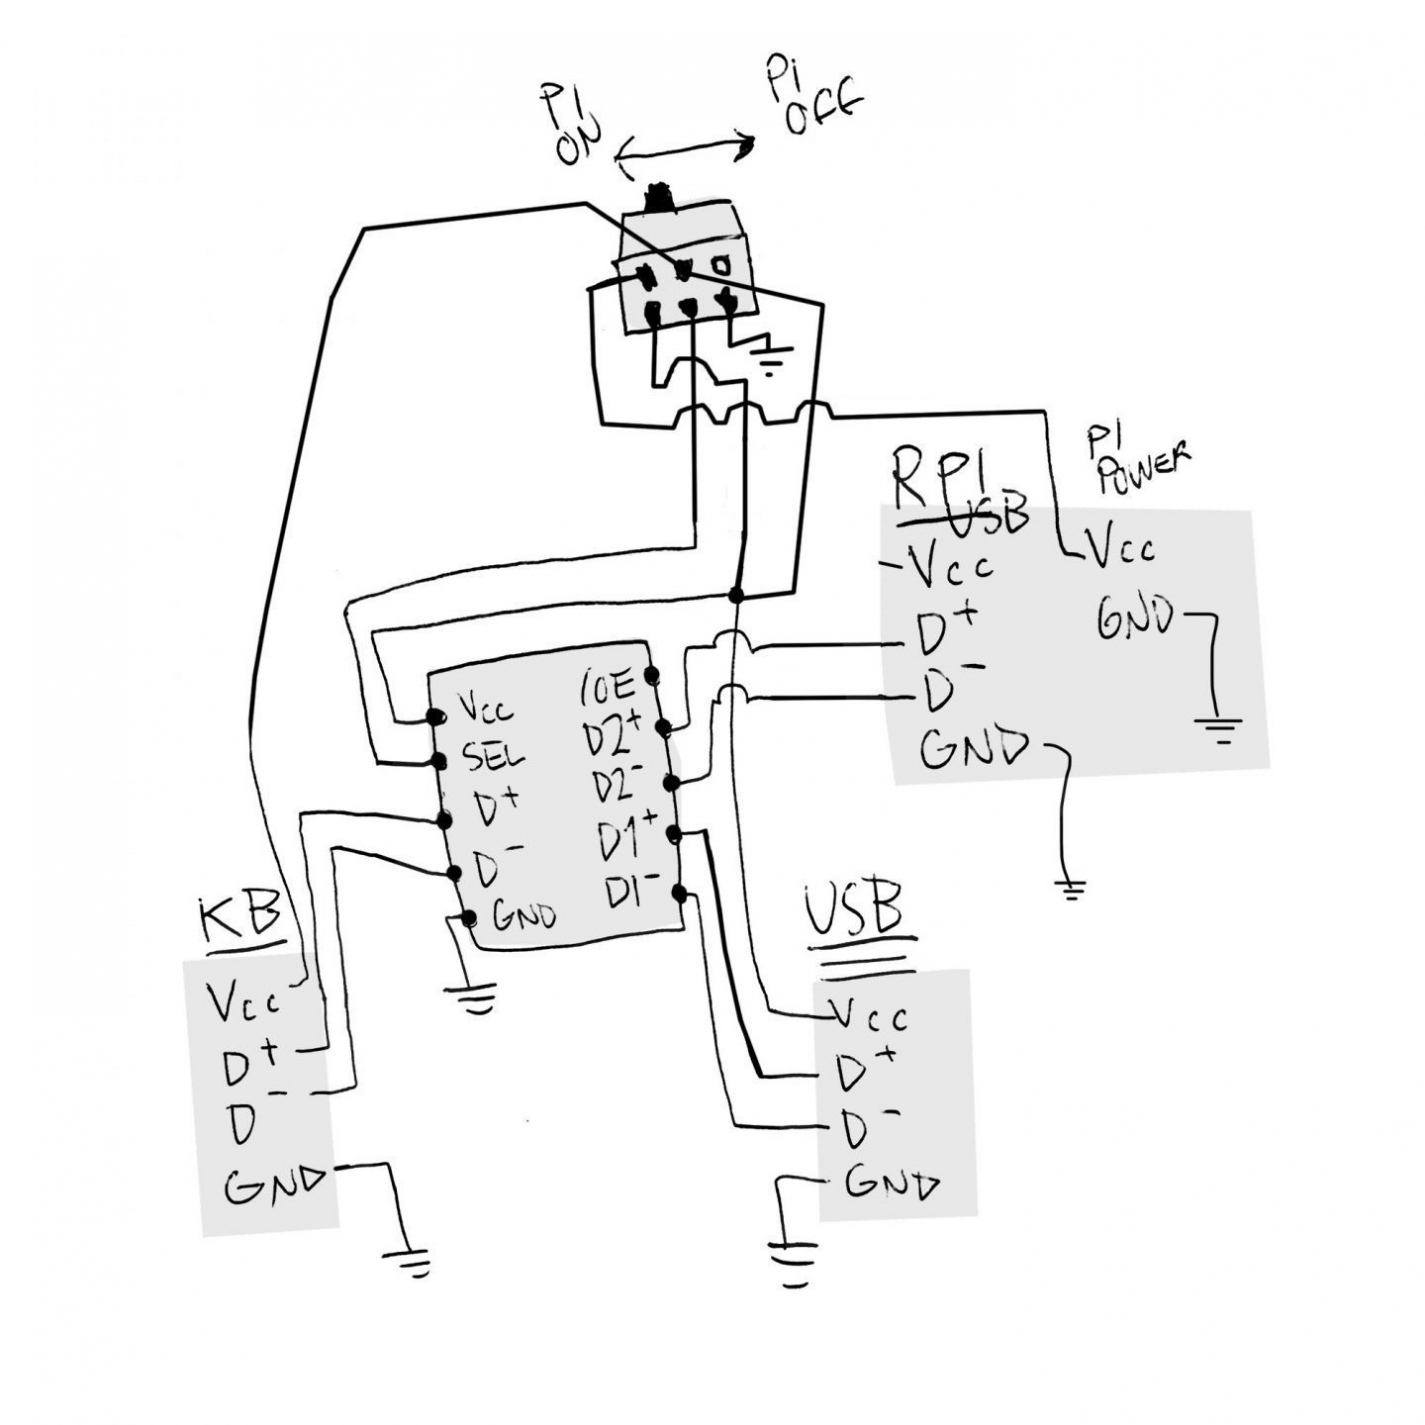 Wiring Diagram For Hdmi To Usb To A Micro